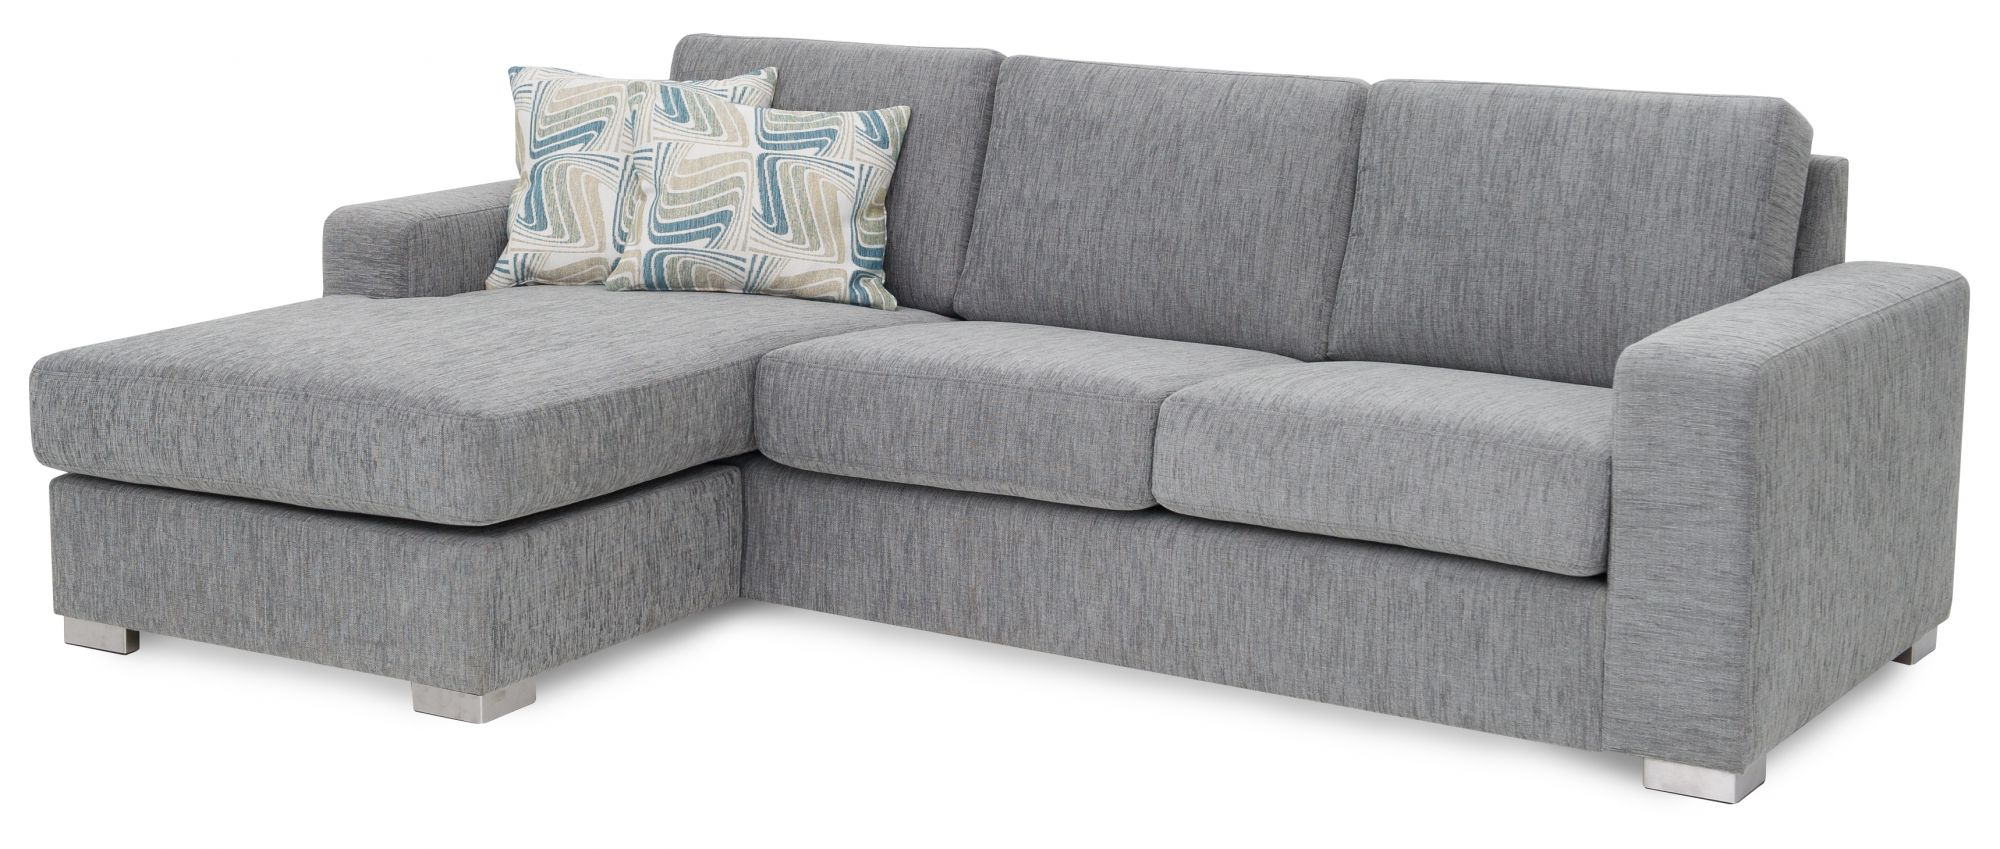 Most Up To Date Cameron Sofa Chairs With Regard To Buy The Cameron Corner Sofa At Belgica Furniture – Belgica Furniture (View 5 of 20)